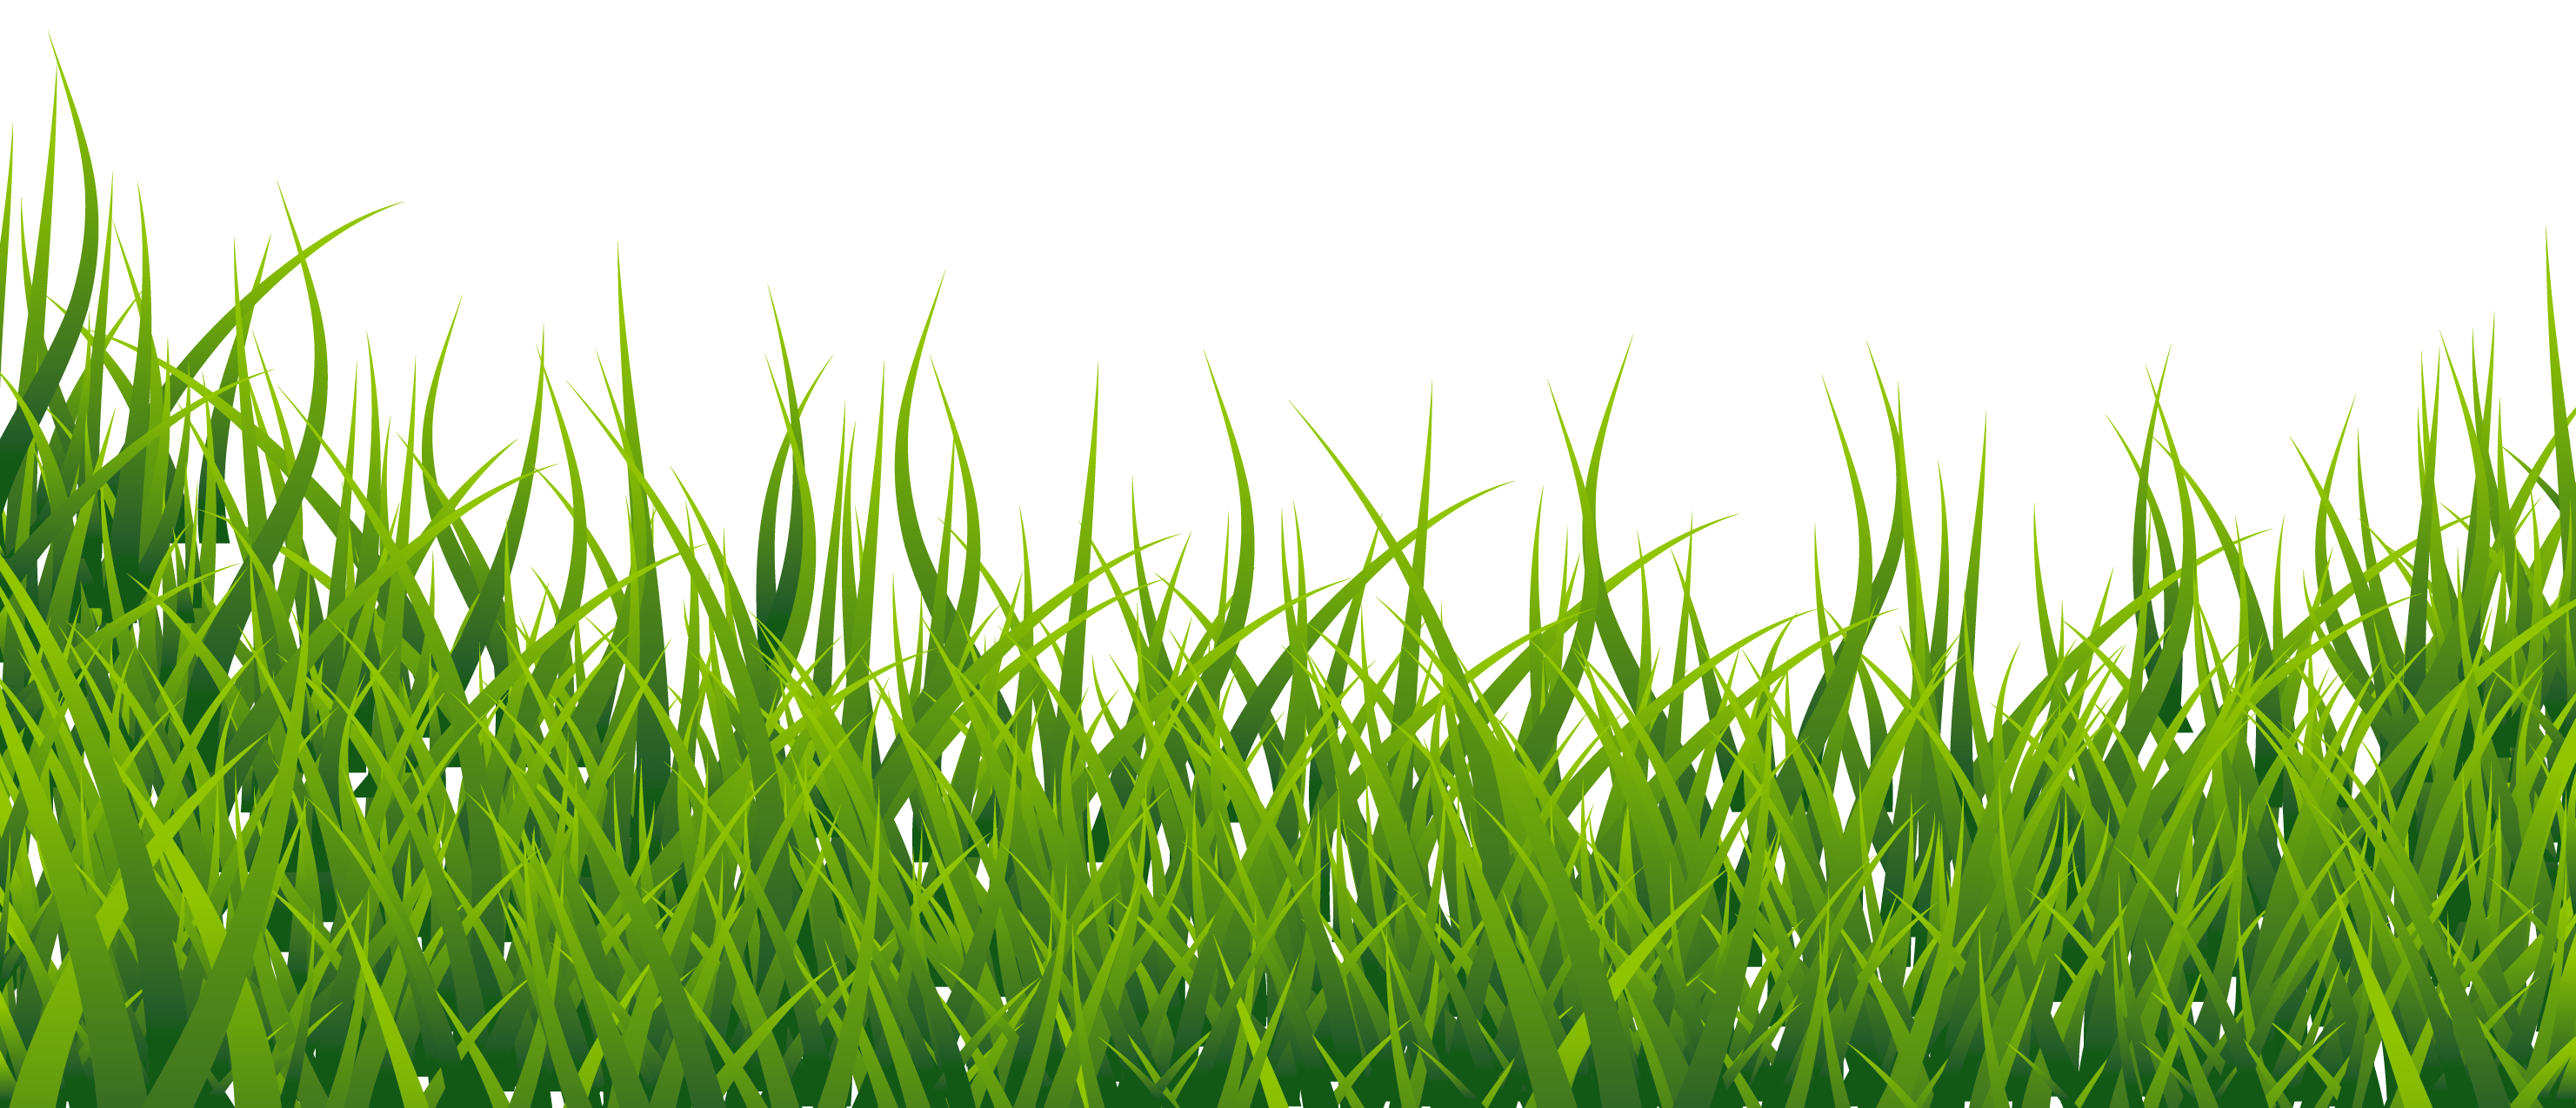 hight resolution of black and white google clipart black and white grass clipart grass vector